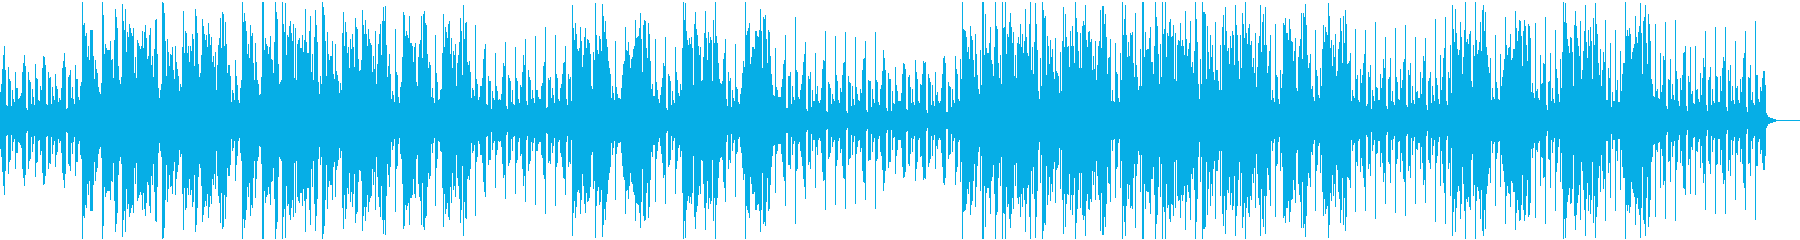 Acoustic guitar, female, english, fashionable, guitar's reproduced waveform